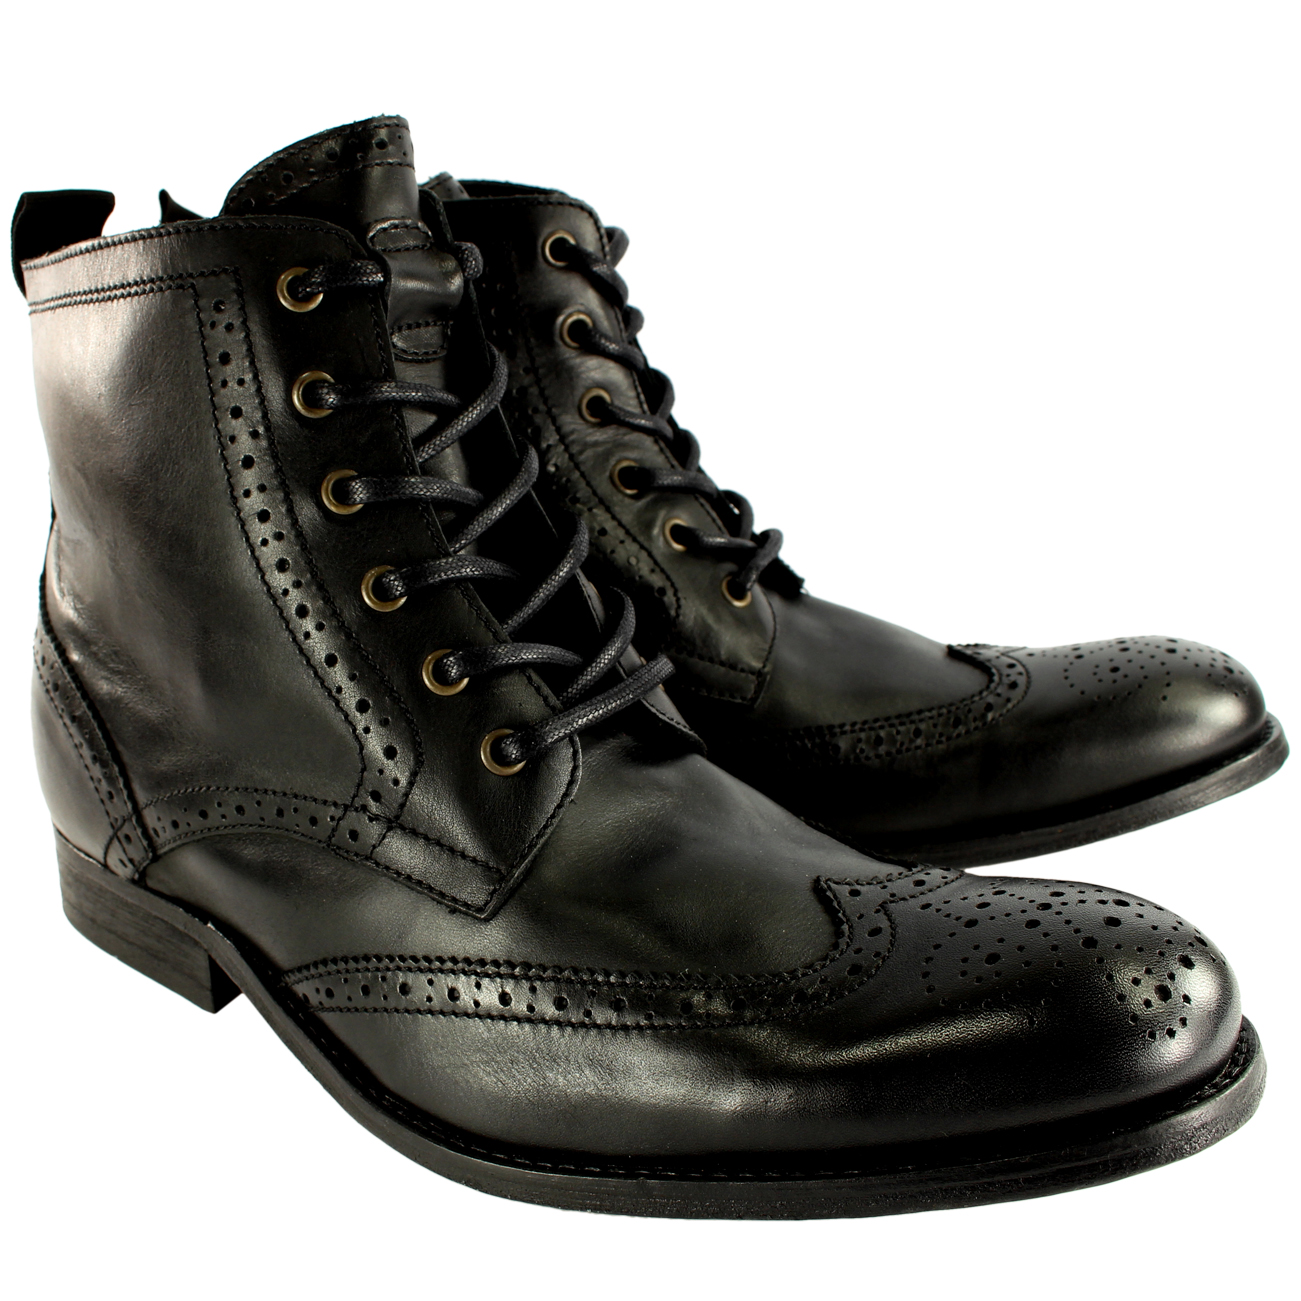 Find great deals on eBay for lace up boots. Shop with confidence.